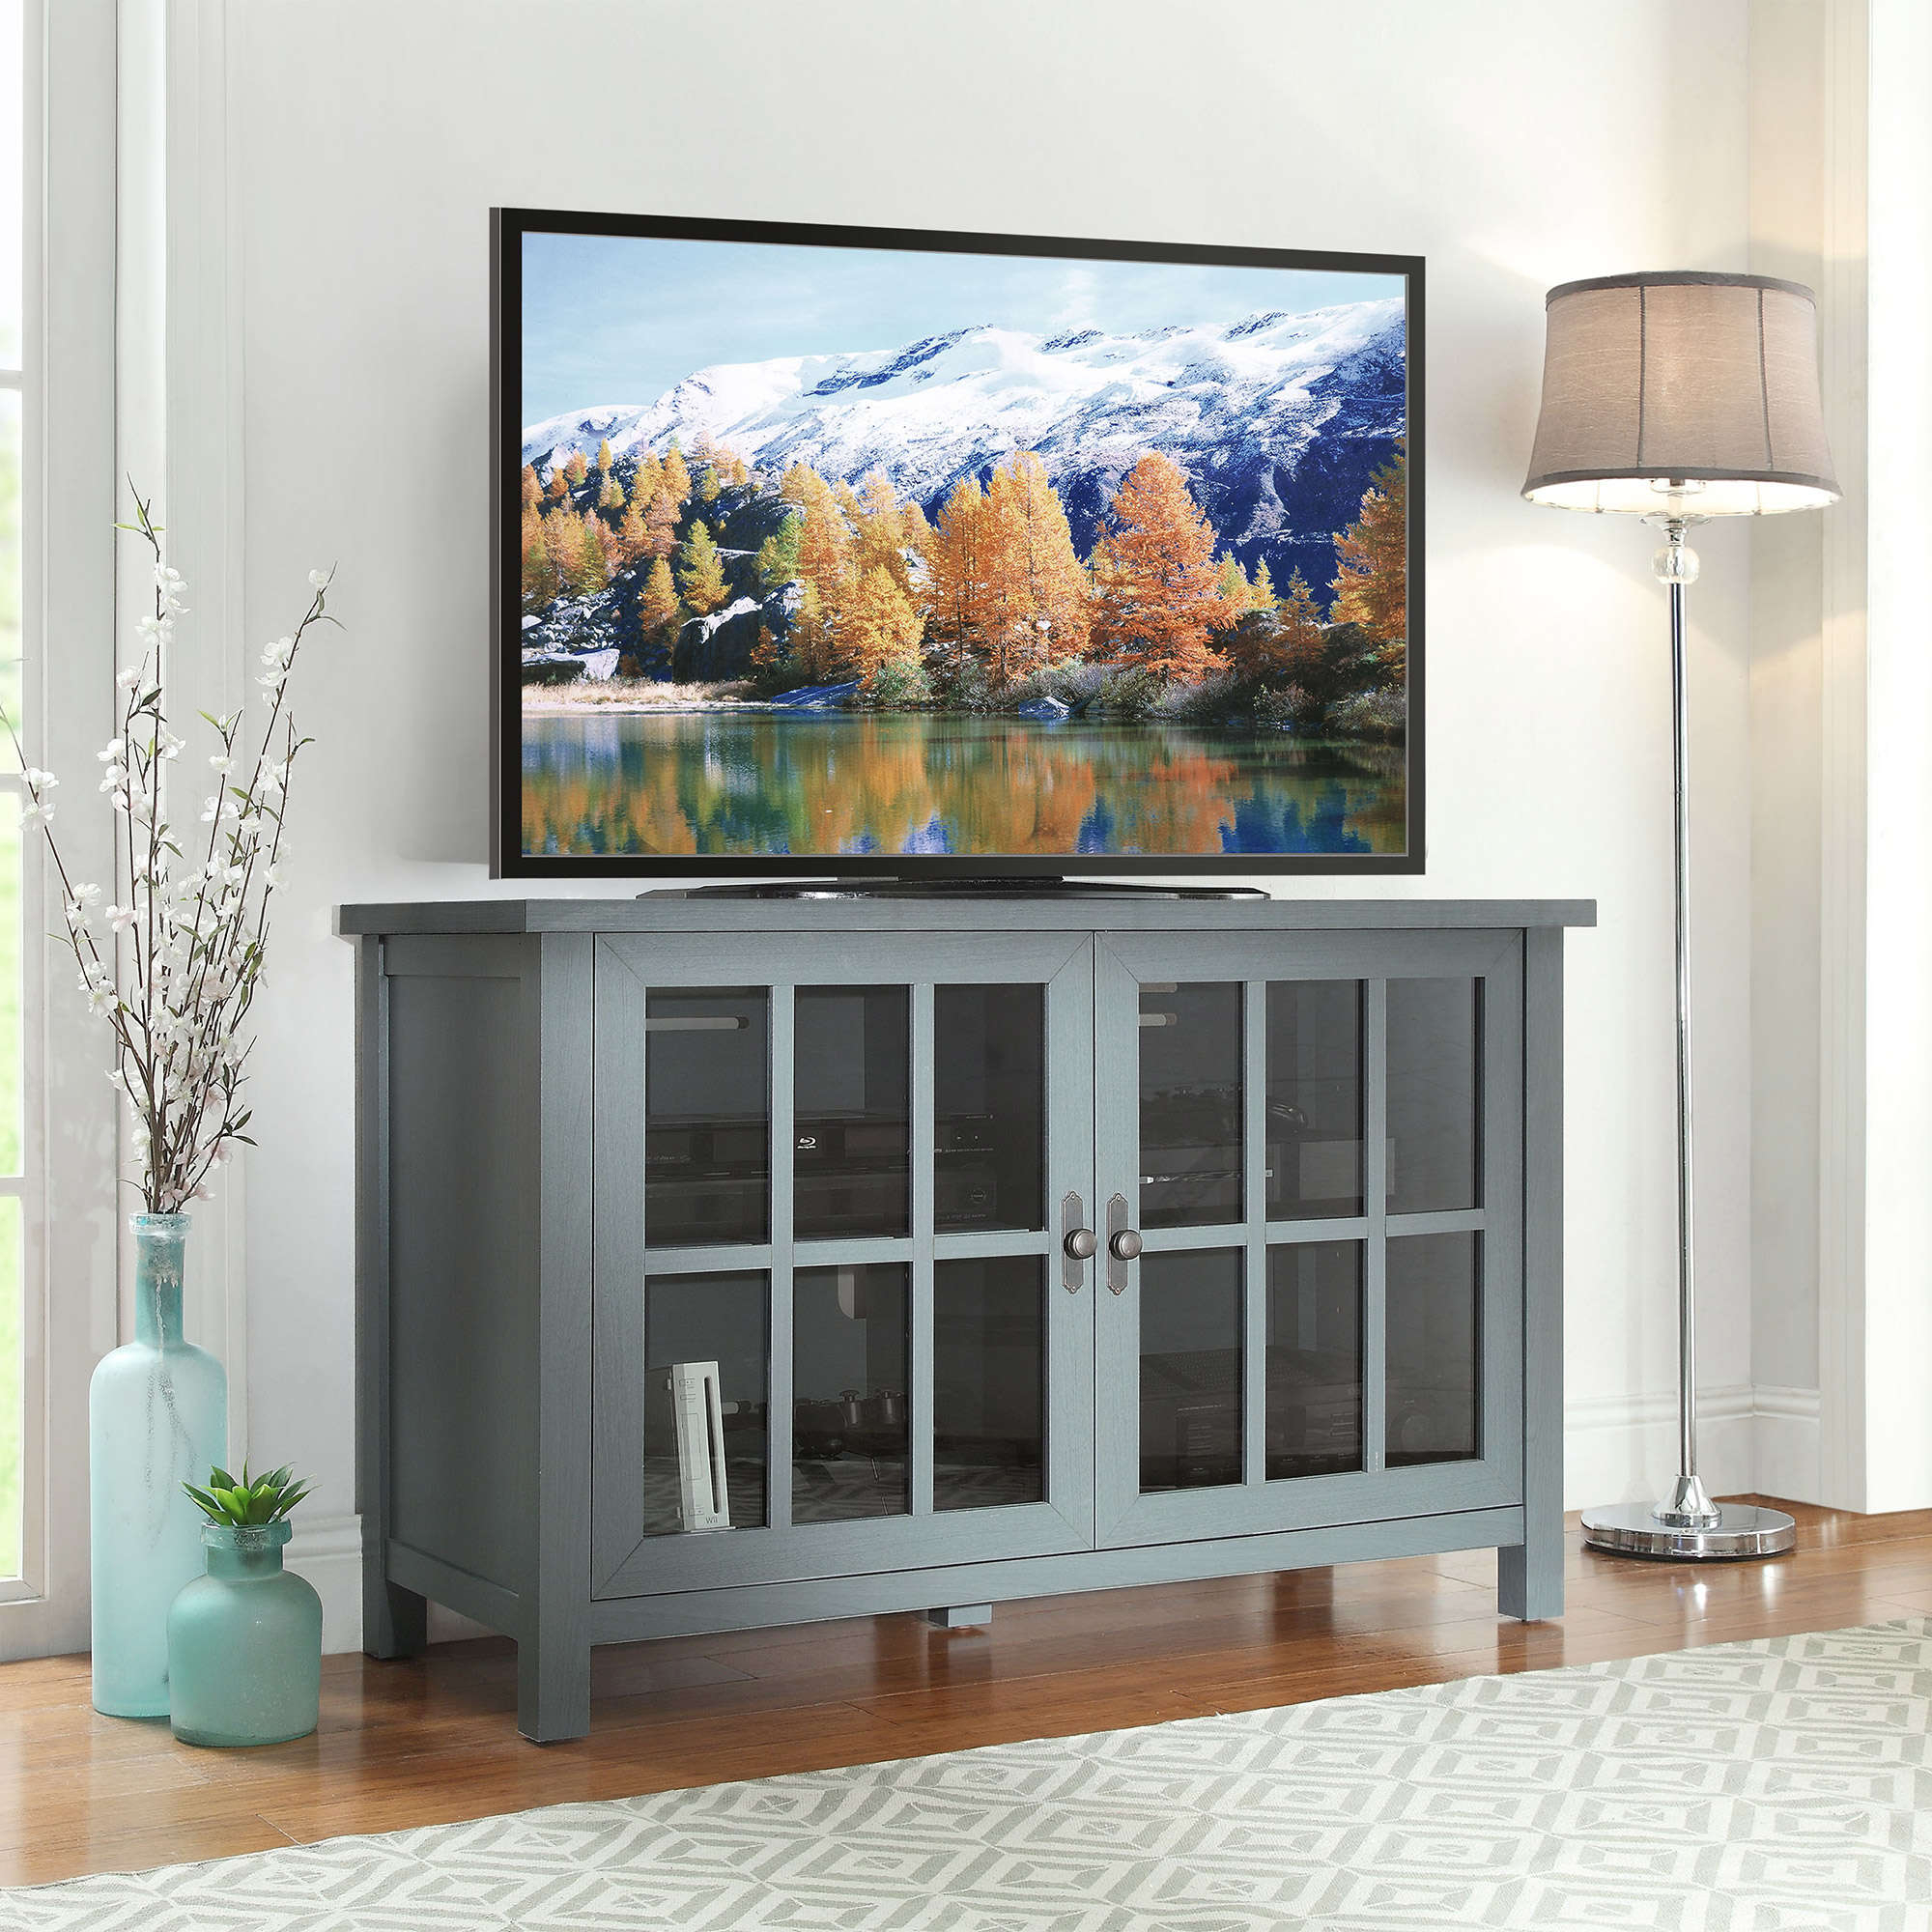 Better Homes And Gardens Oxford Square Tv Console For Tvs Up To 55 for Oxford 84 Inch Tv Stands (Image 8 of 30)